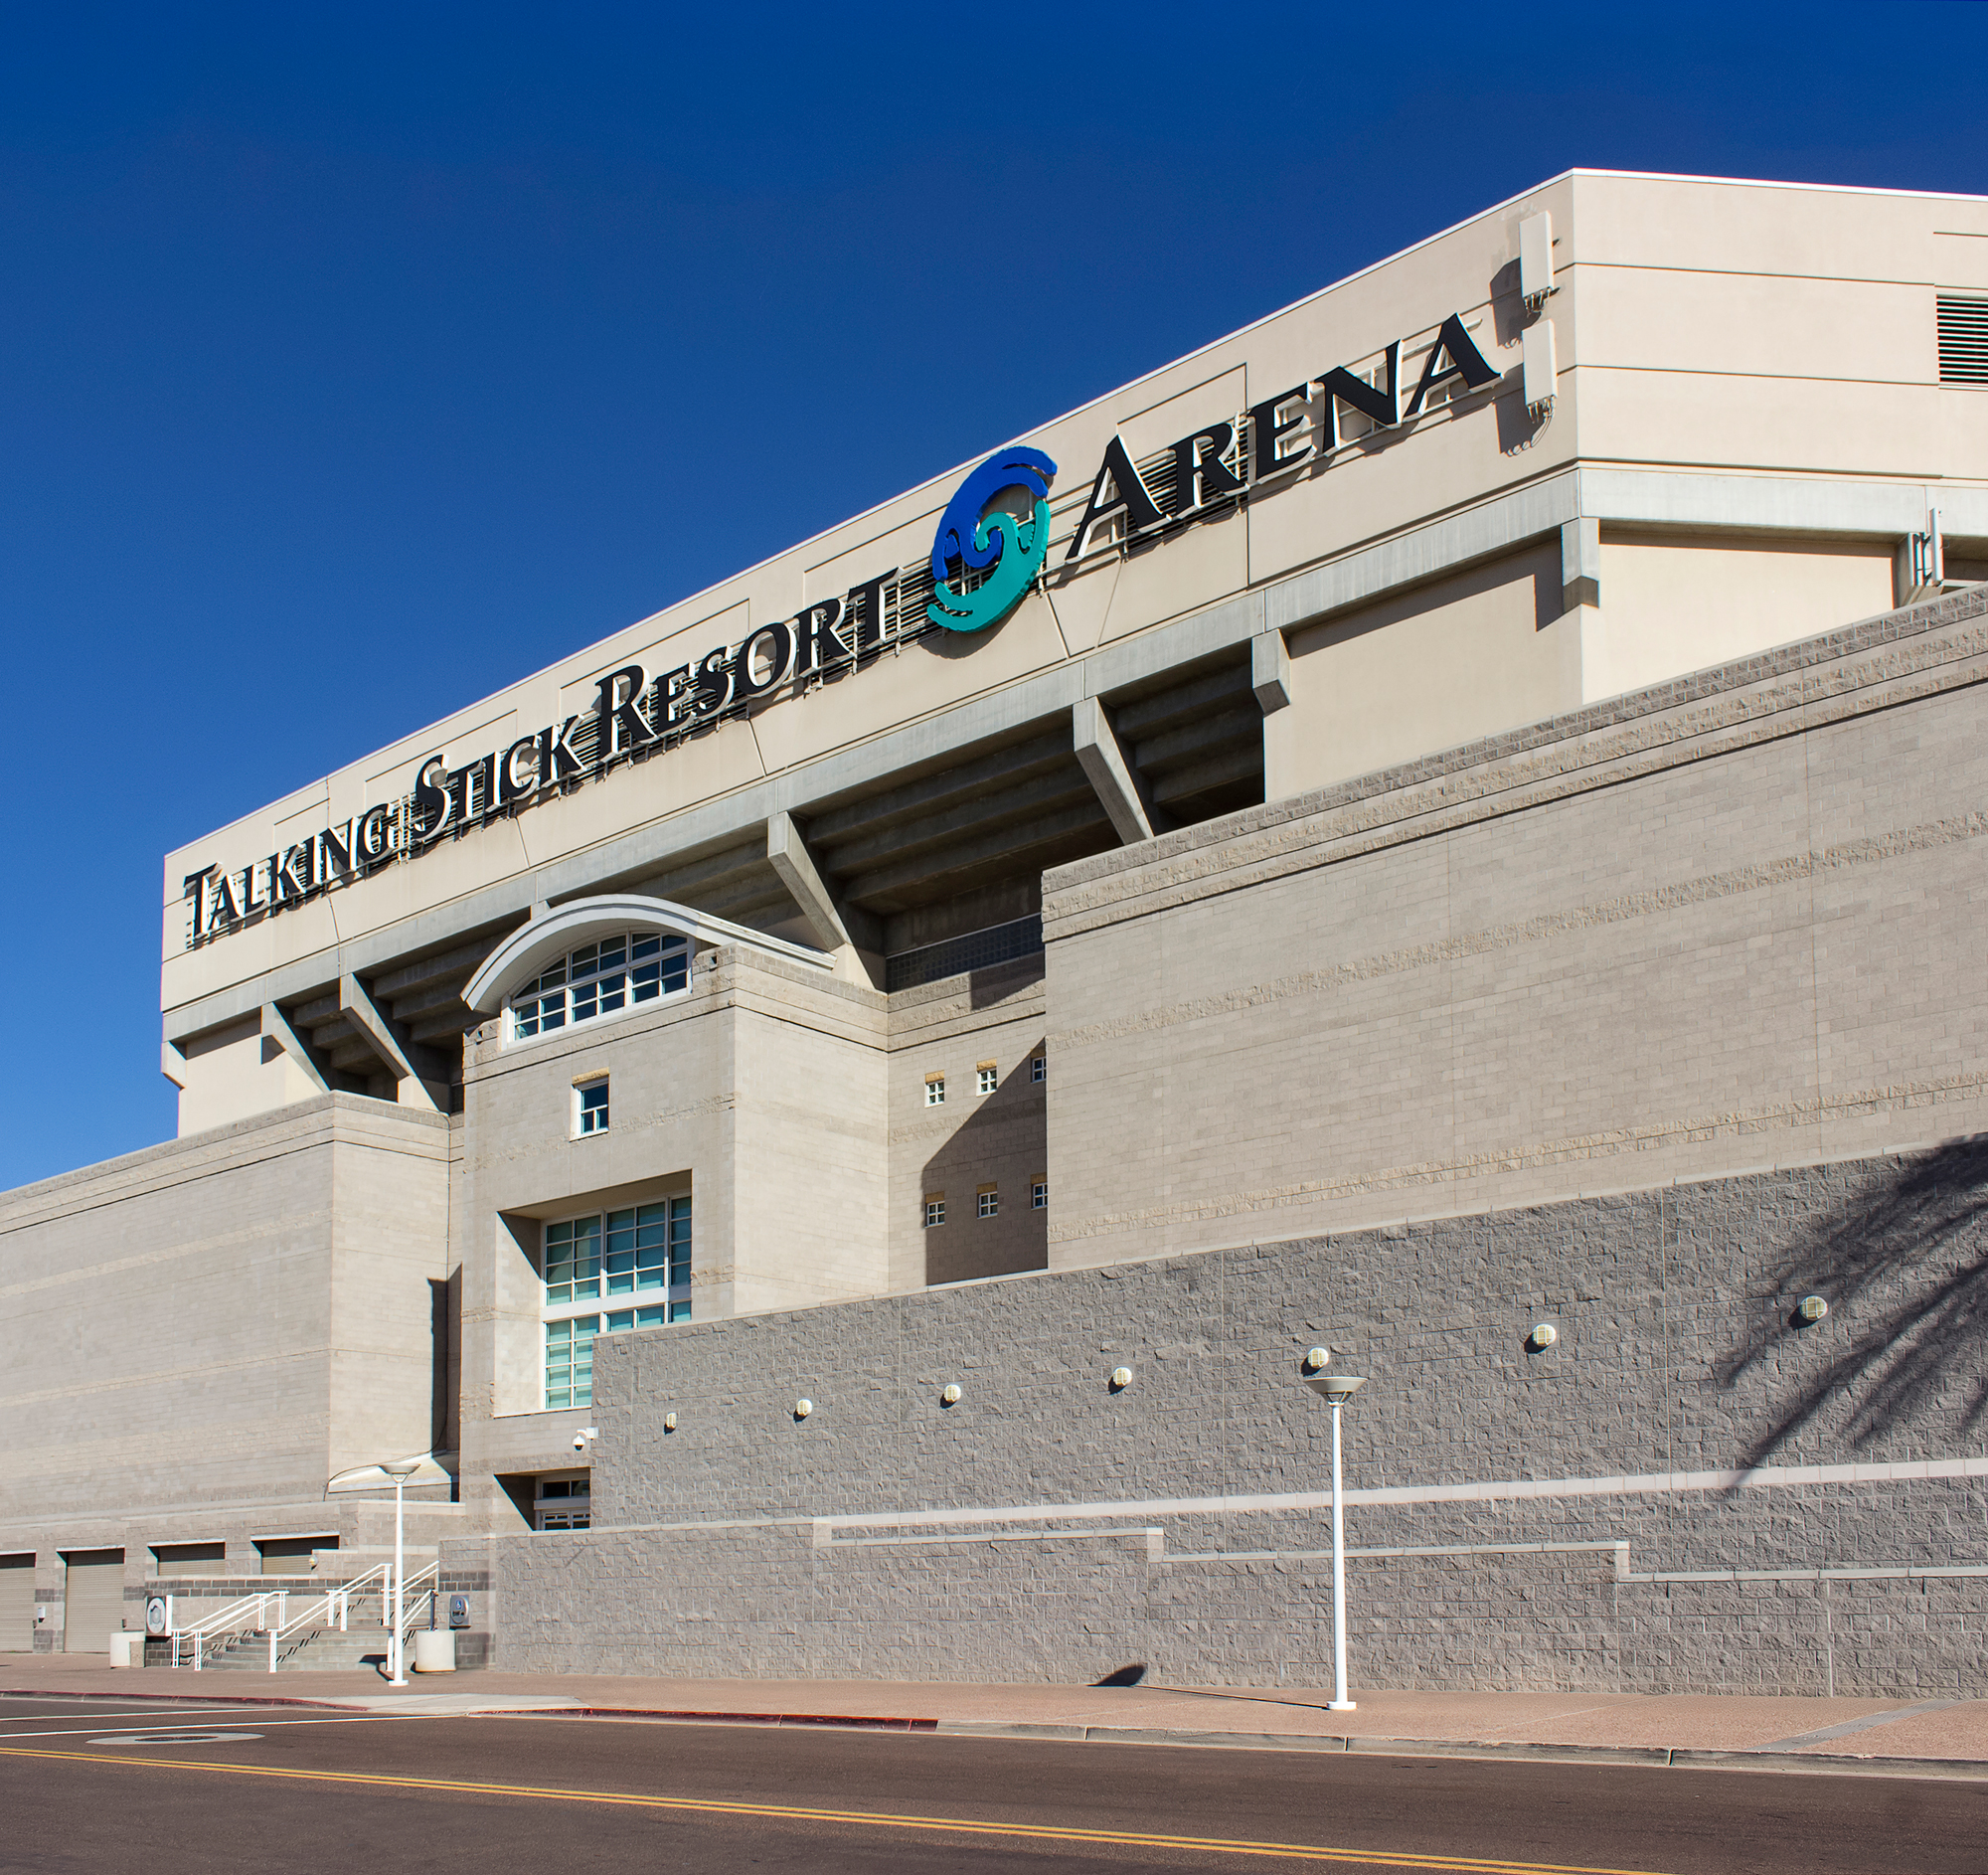 The south side of the arena is branded using the same channel letter sign as the two other entrances.